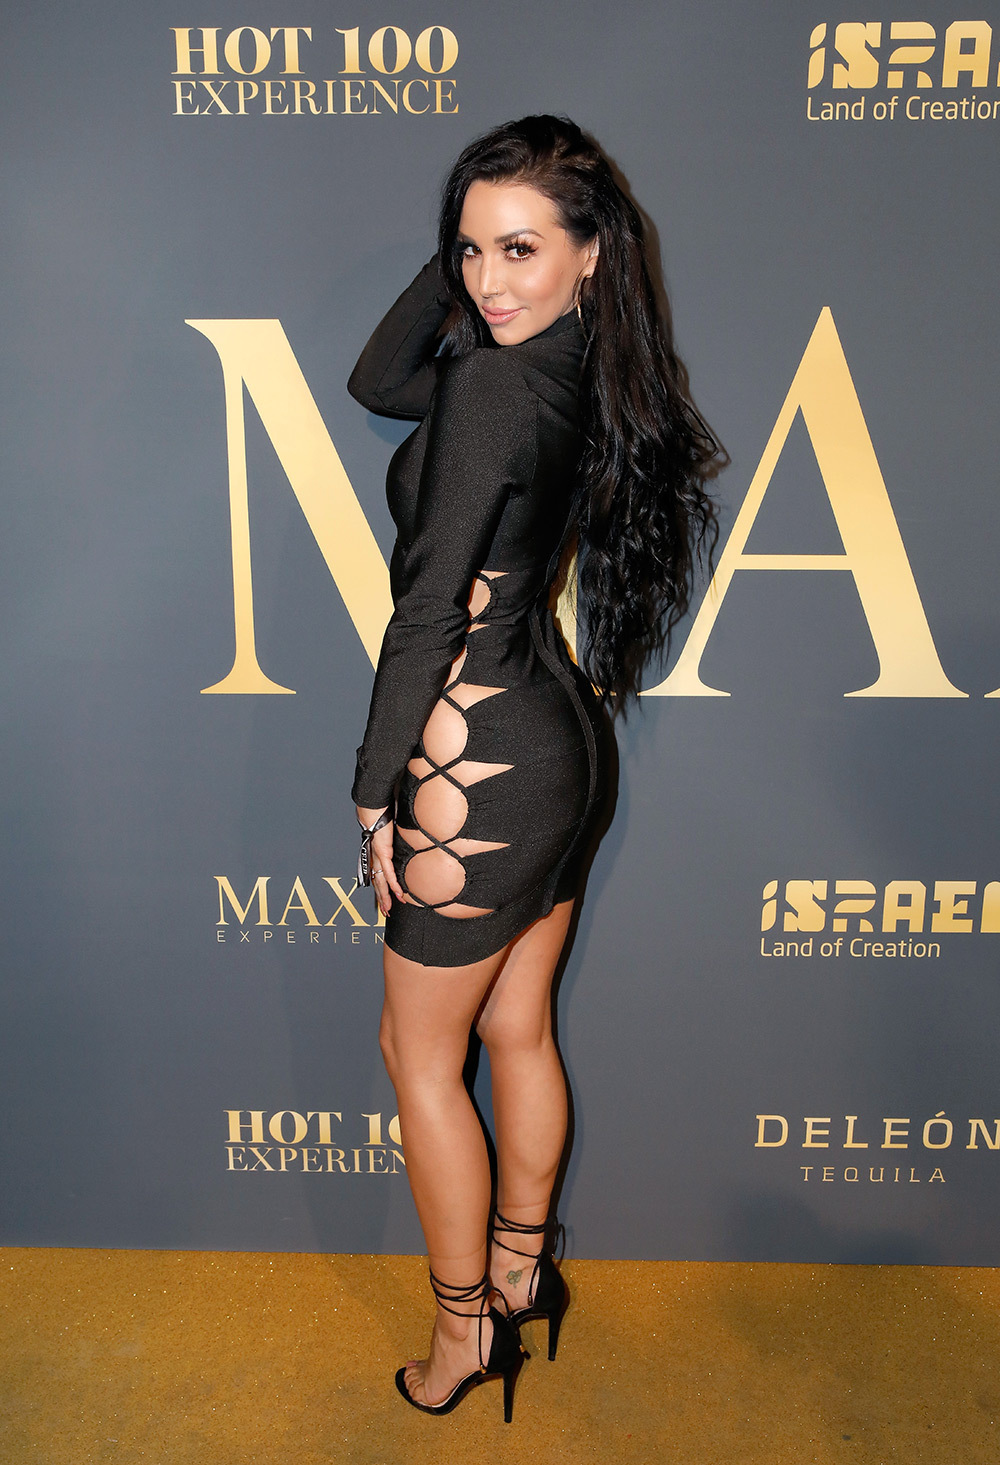 Scheana Marie of Vanderpump Rules attends the Maxim Hot 100 Experience in Hollywood